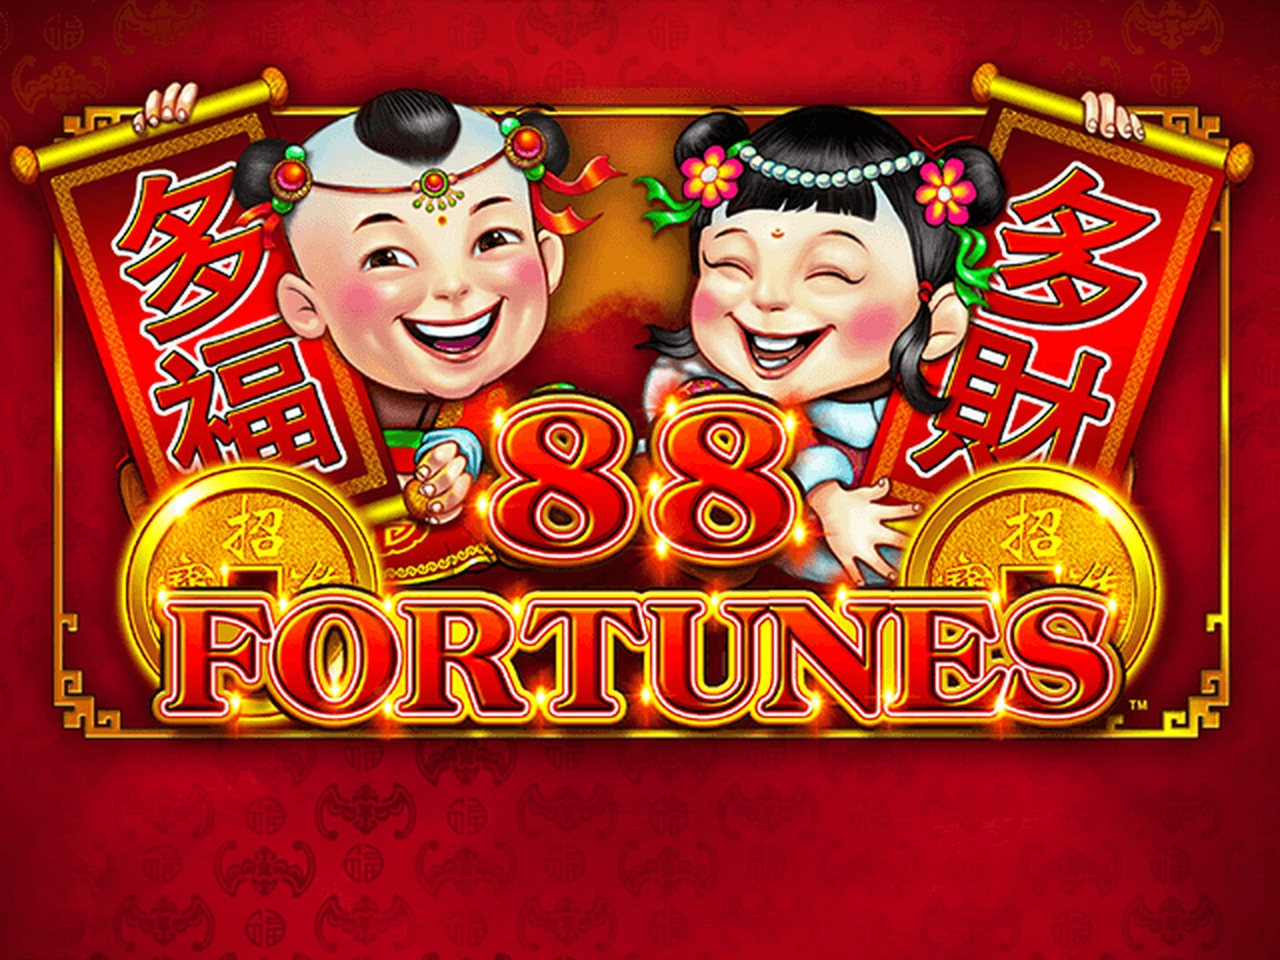 Se 88 Fortunes Online Slot Demo Game, SG